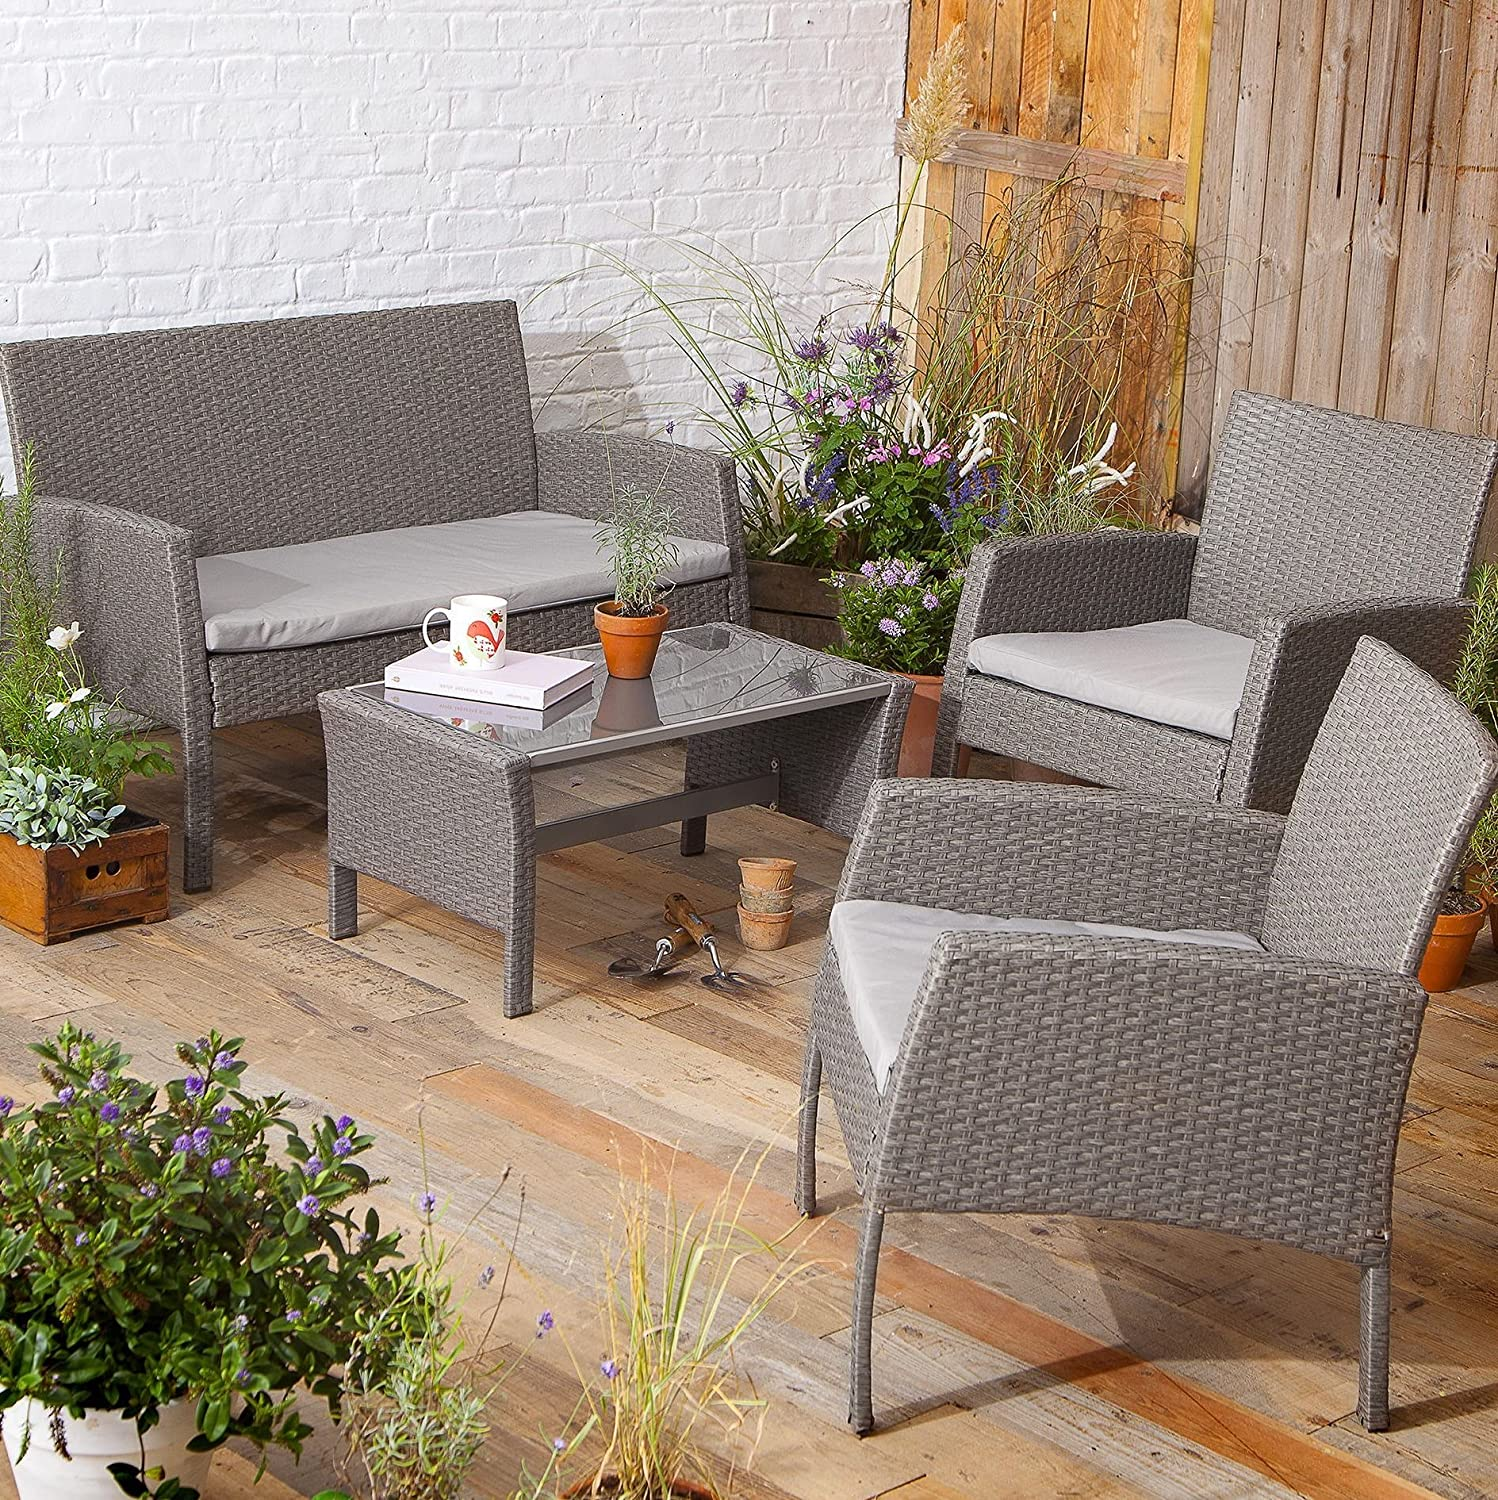 Tesco NEW San Marino 11 Piece Rattan Garden Lounge Set Table Bench